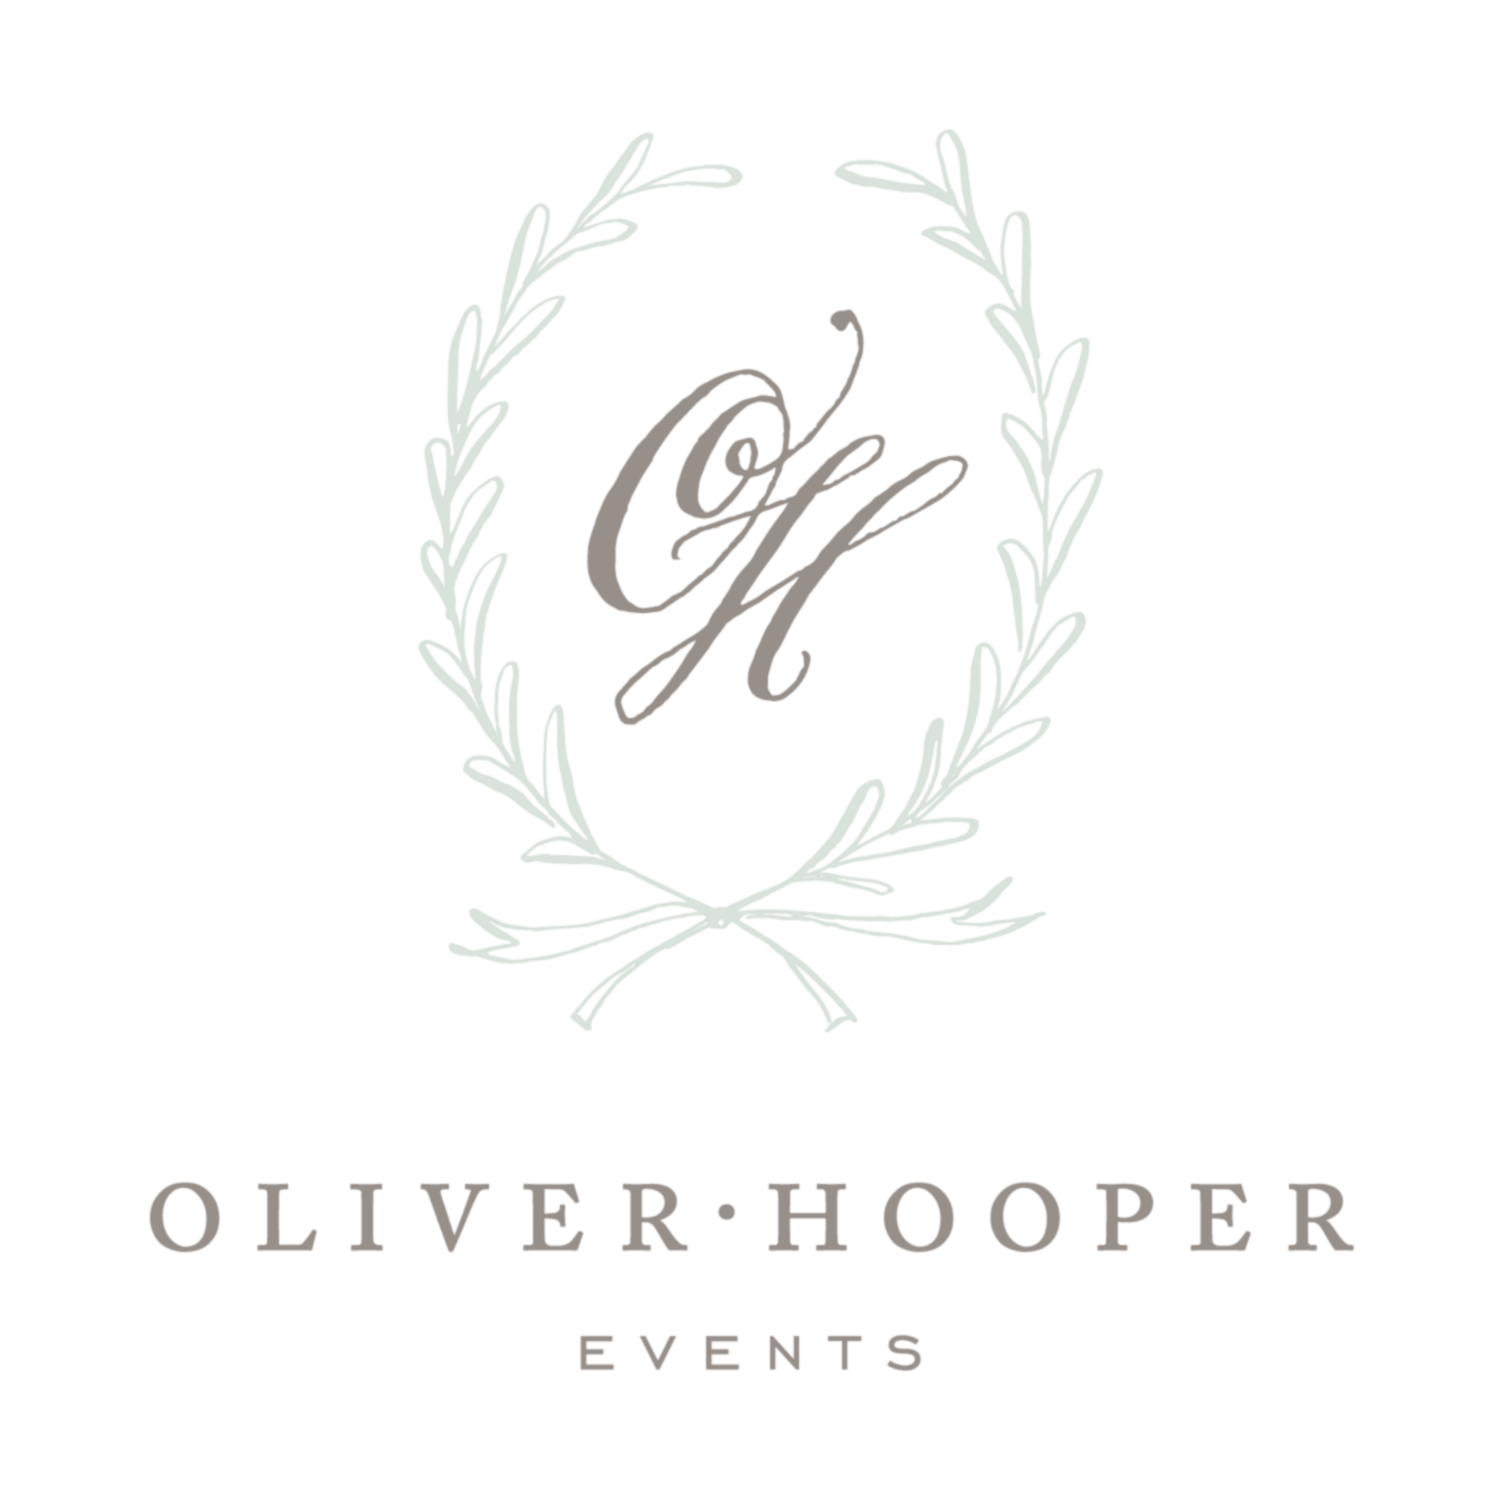 OLIVER HOOPER EVENTS